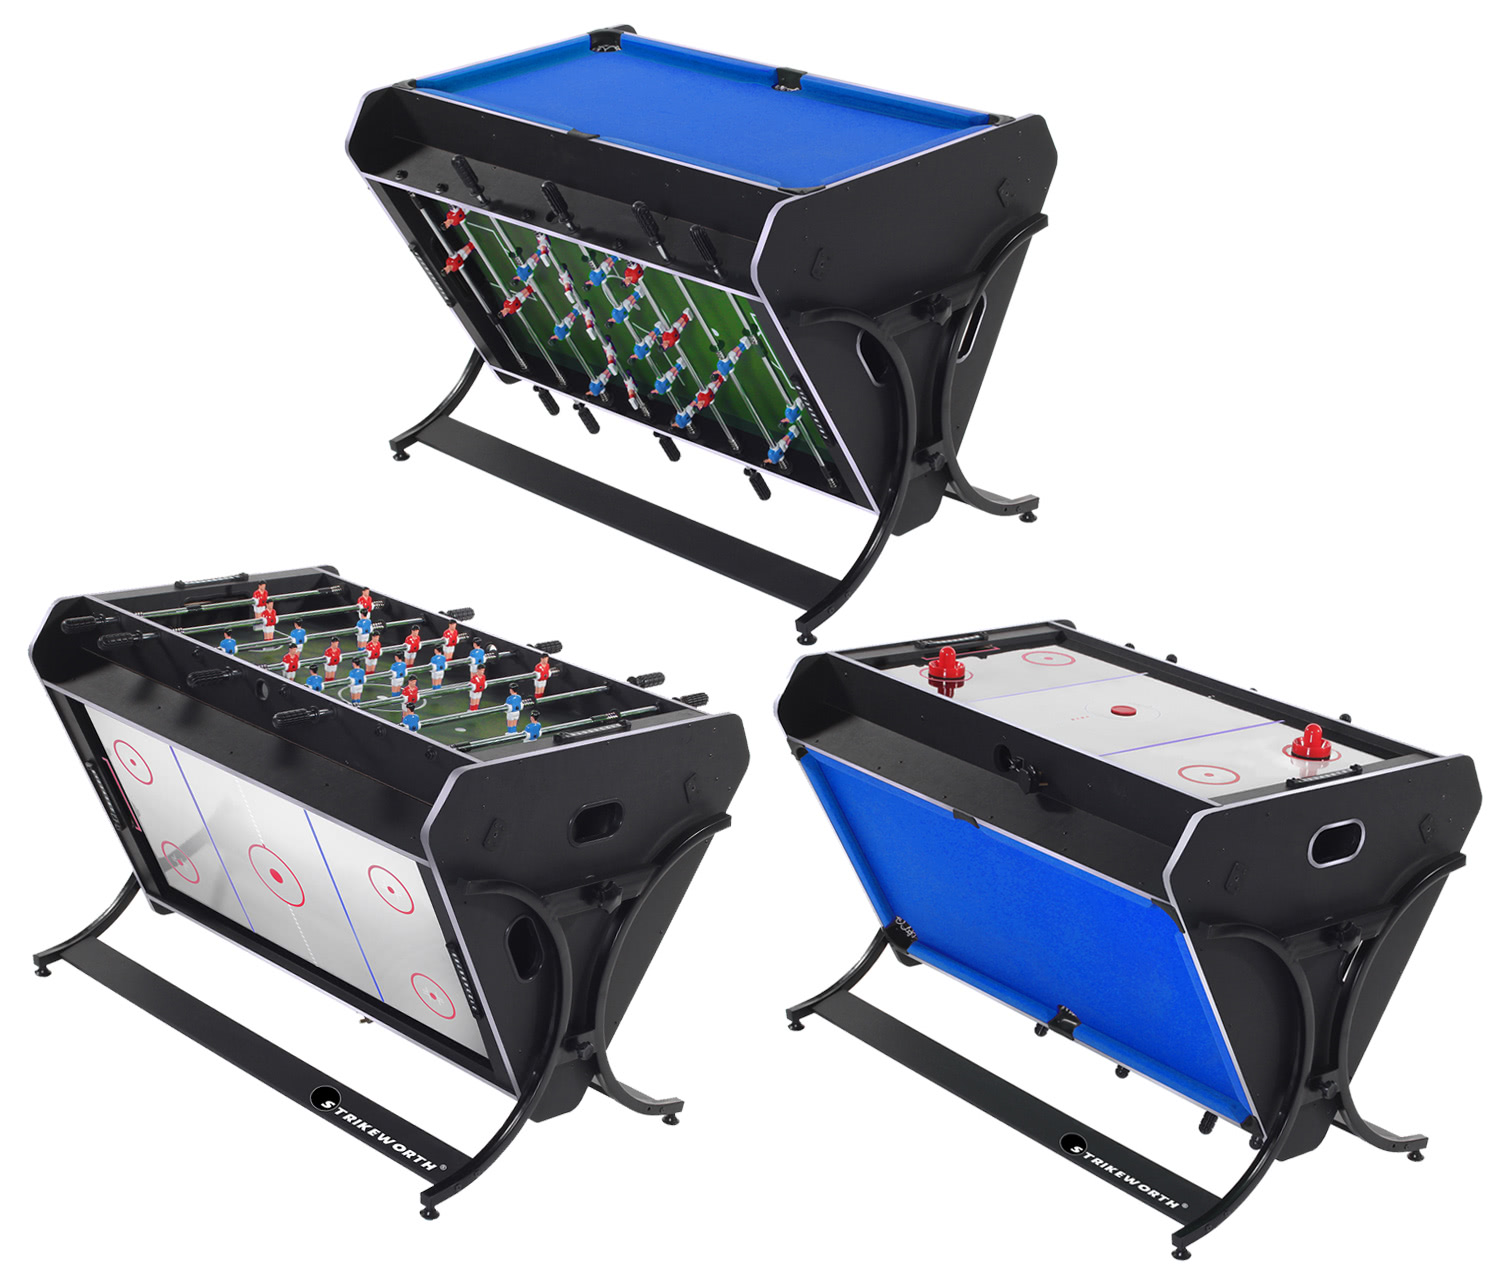 Bon Strikeworth TriSport 4 Foot Multi Games Table